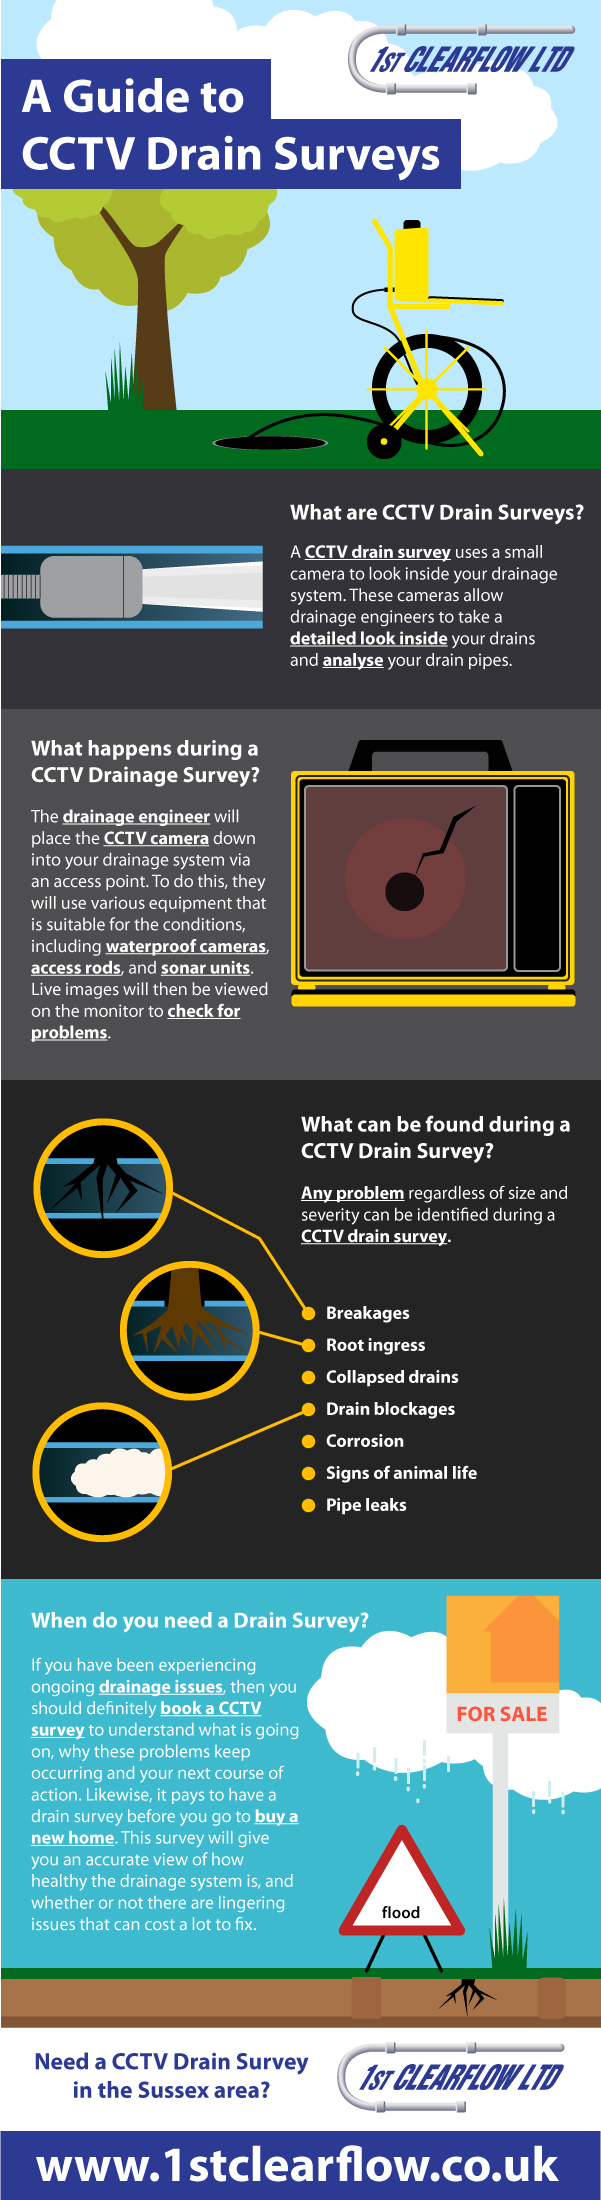 A Guide To CCTV Drain Surveys